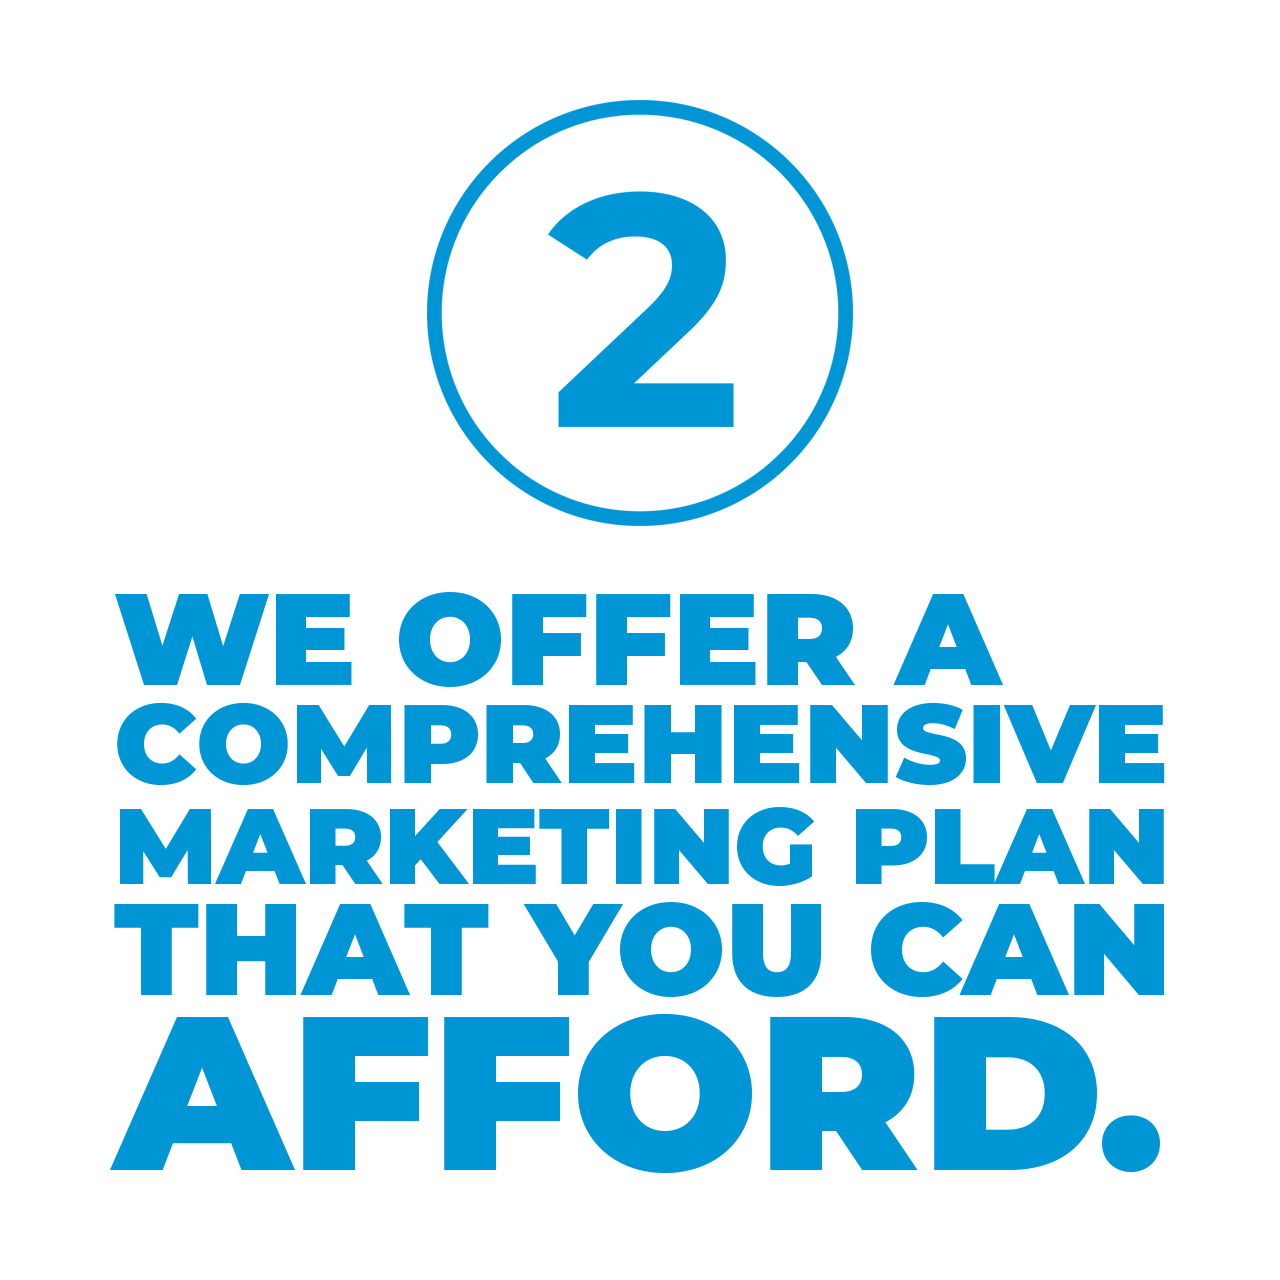 we offer a comprehensive marketing plan that you can afford.